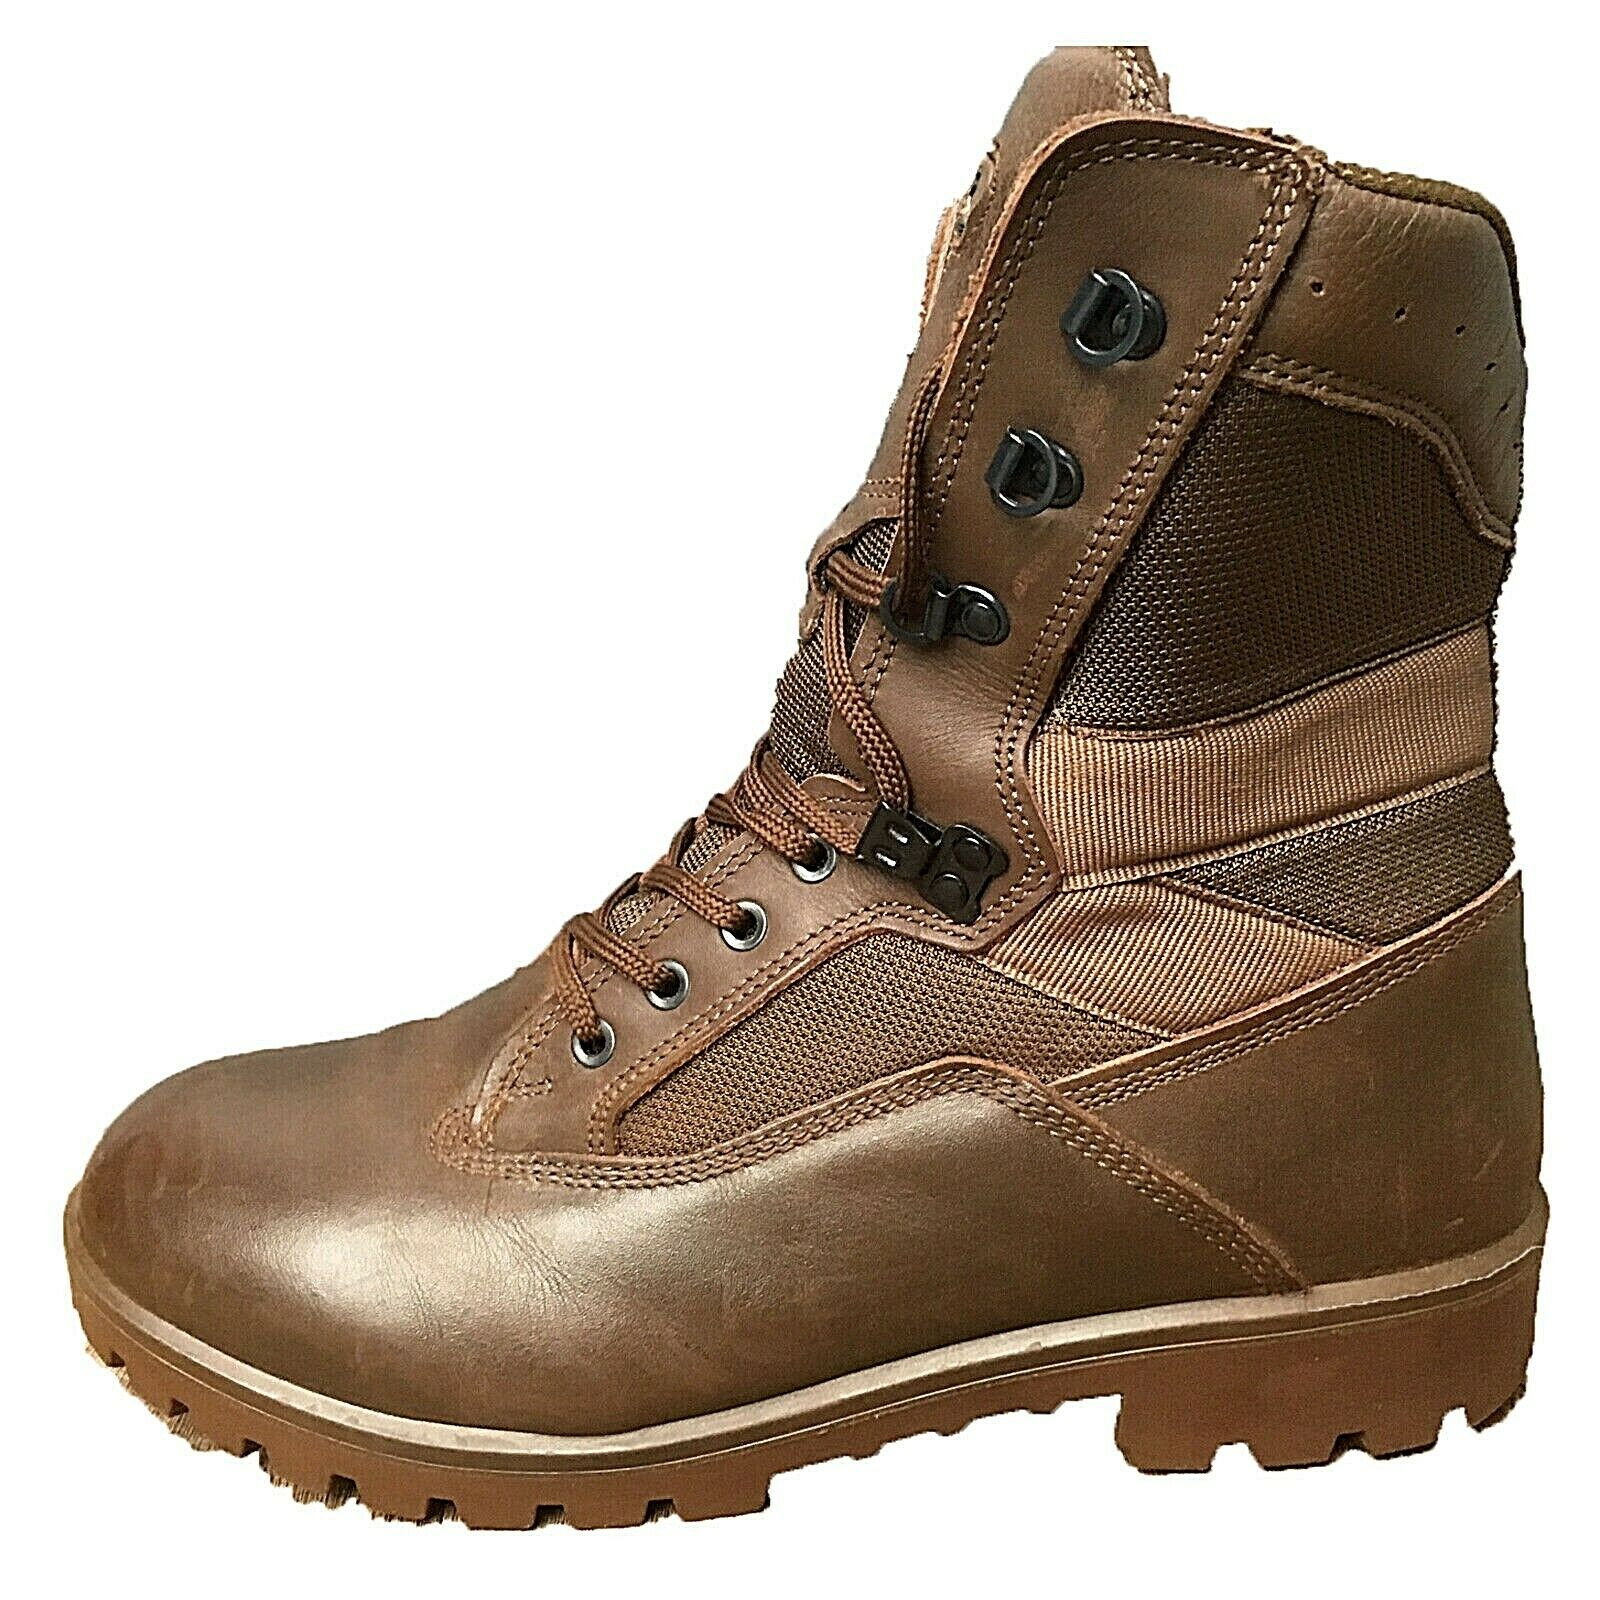 YDS Kestrel Brown BRITISH ARMY Boots MTP Surplus Issue Leather Combat Military